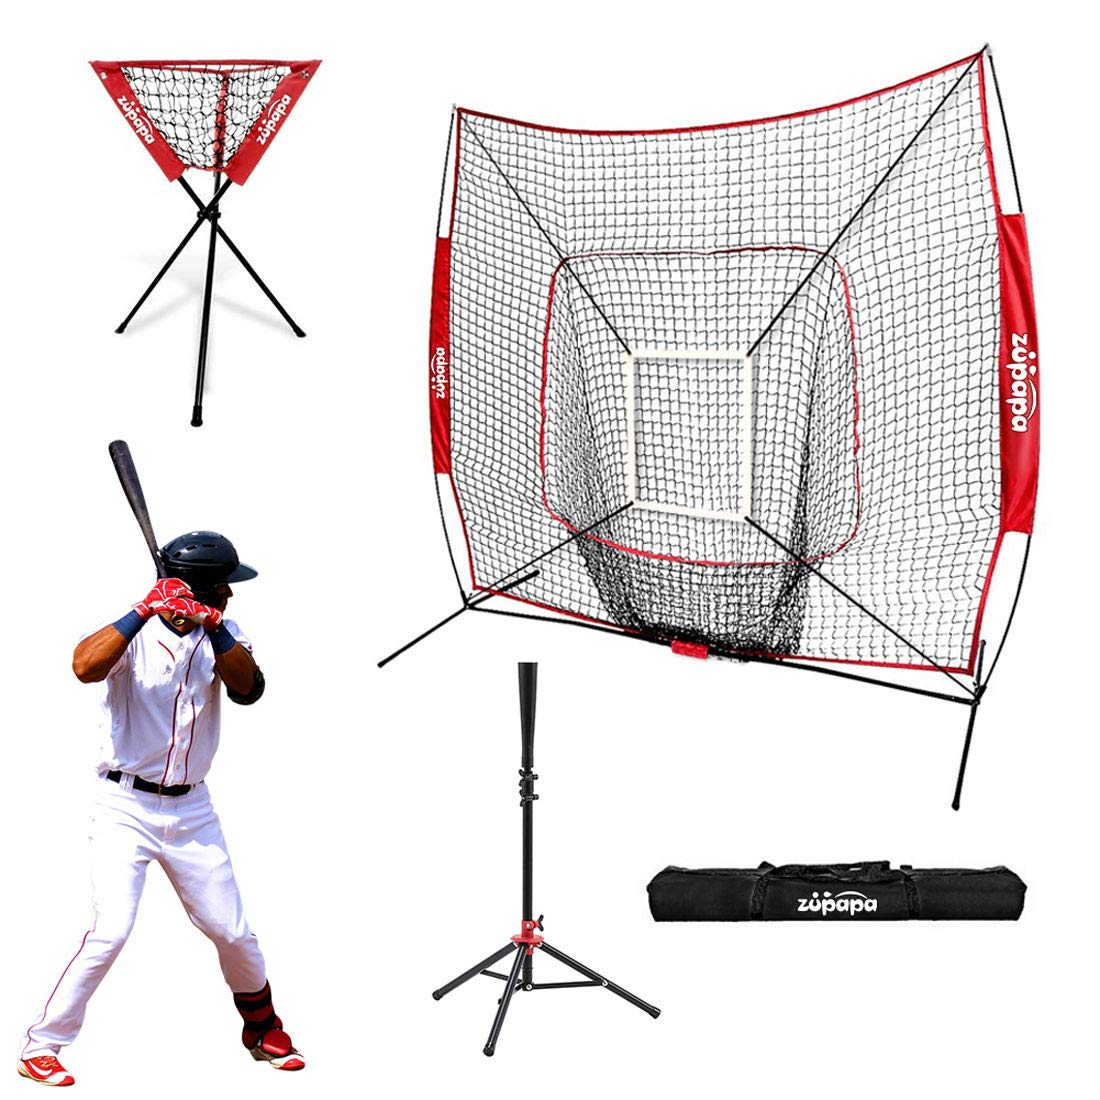 Zupapa 7x7 Feet Baseball Softball Hitting Pitching Net Tee Caddy Set with Strike Zone, Baseball Backstop Practice Net for Pitching Batting Catching for All Skill Levels by Zupapa